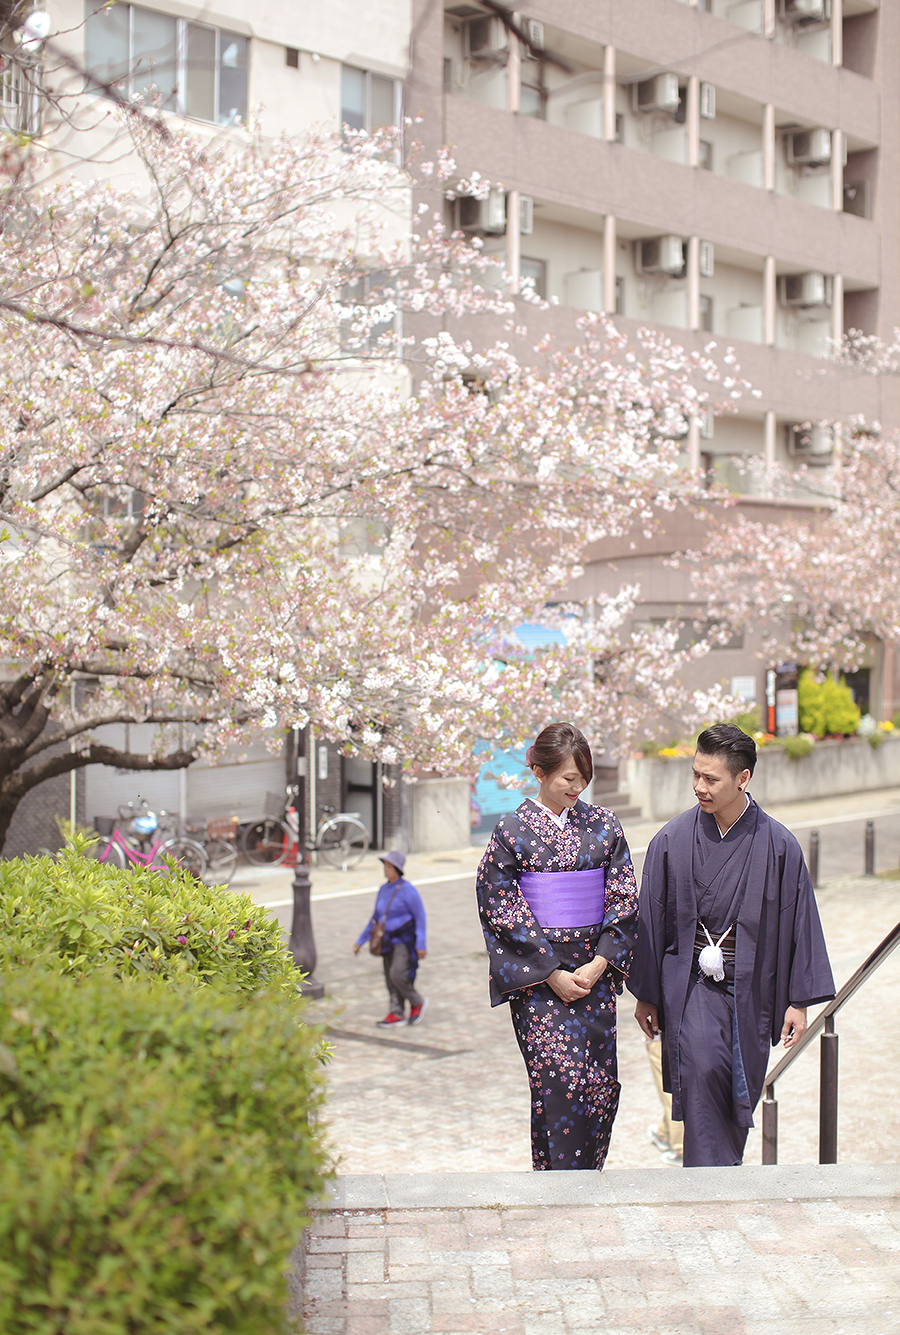 tokyo hakone japan spring sakura . engagement wedding photography by kurt ahs . ns + eu . 0410.jpg